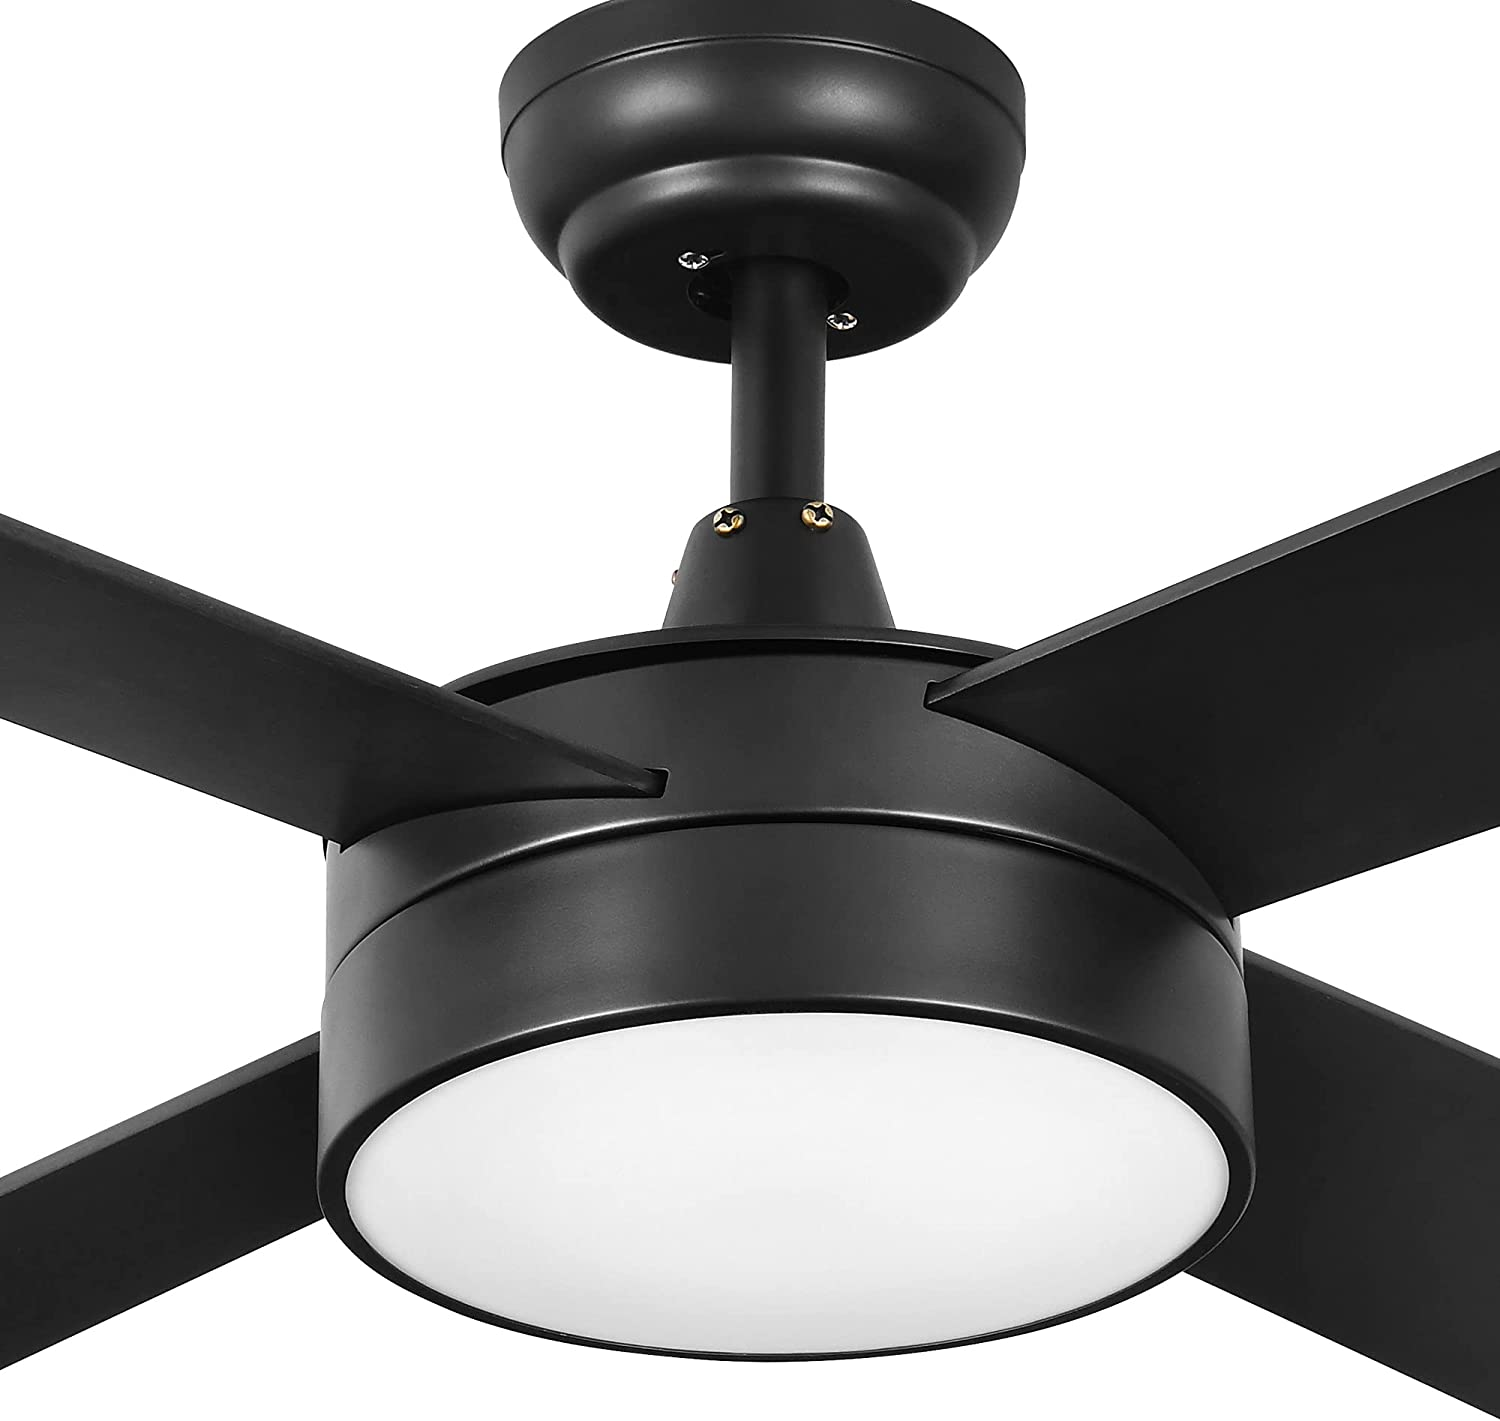 YITAHOME Modern Ceiling メーカー公式 Fan with Light Indoor Inch Outdoor 新発売 52 Ce